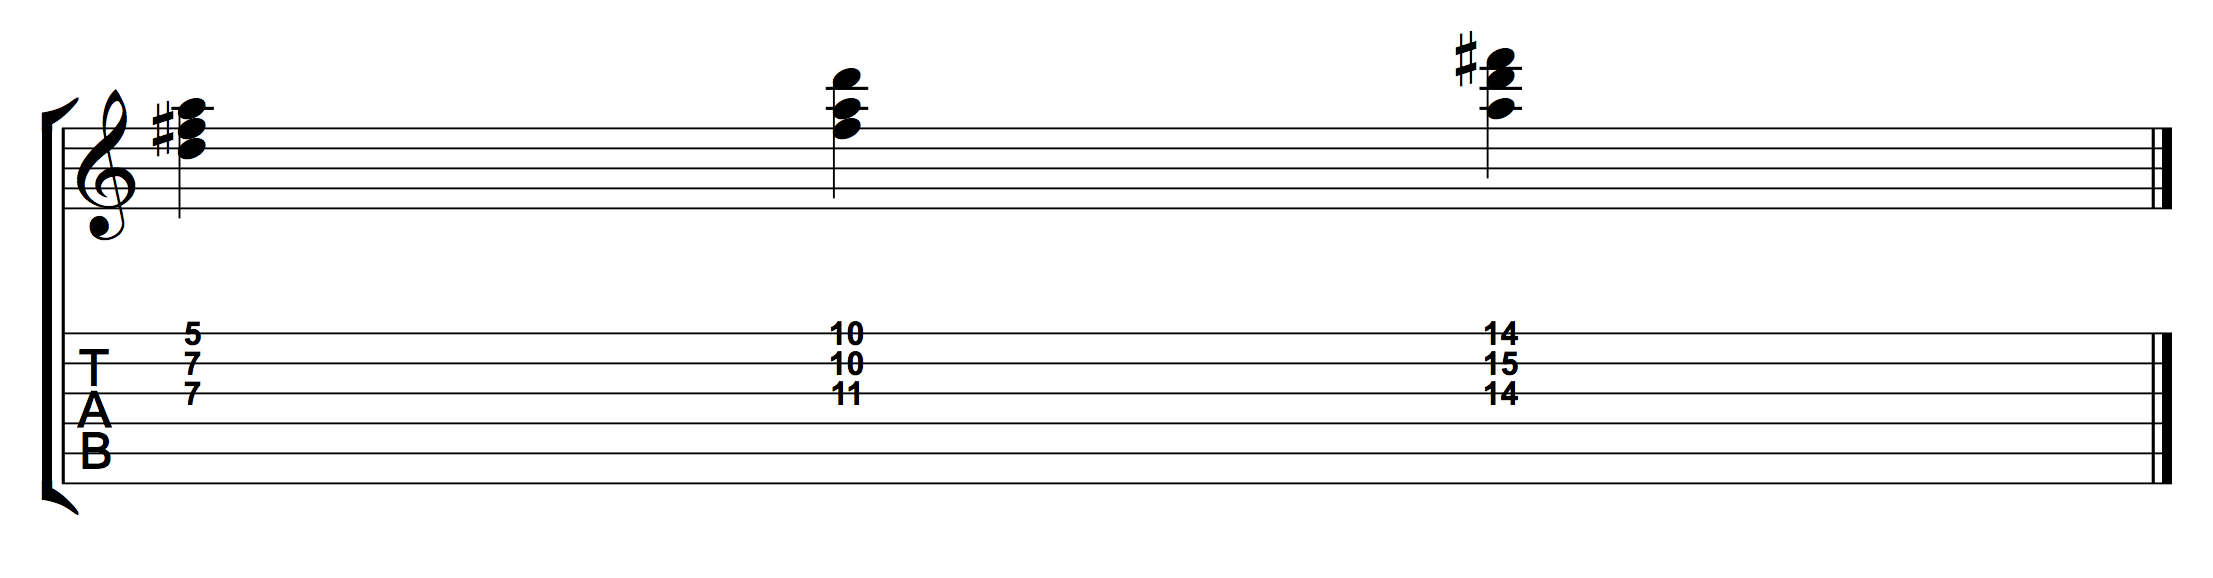 D Major Triad 3 Shapes Higher